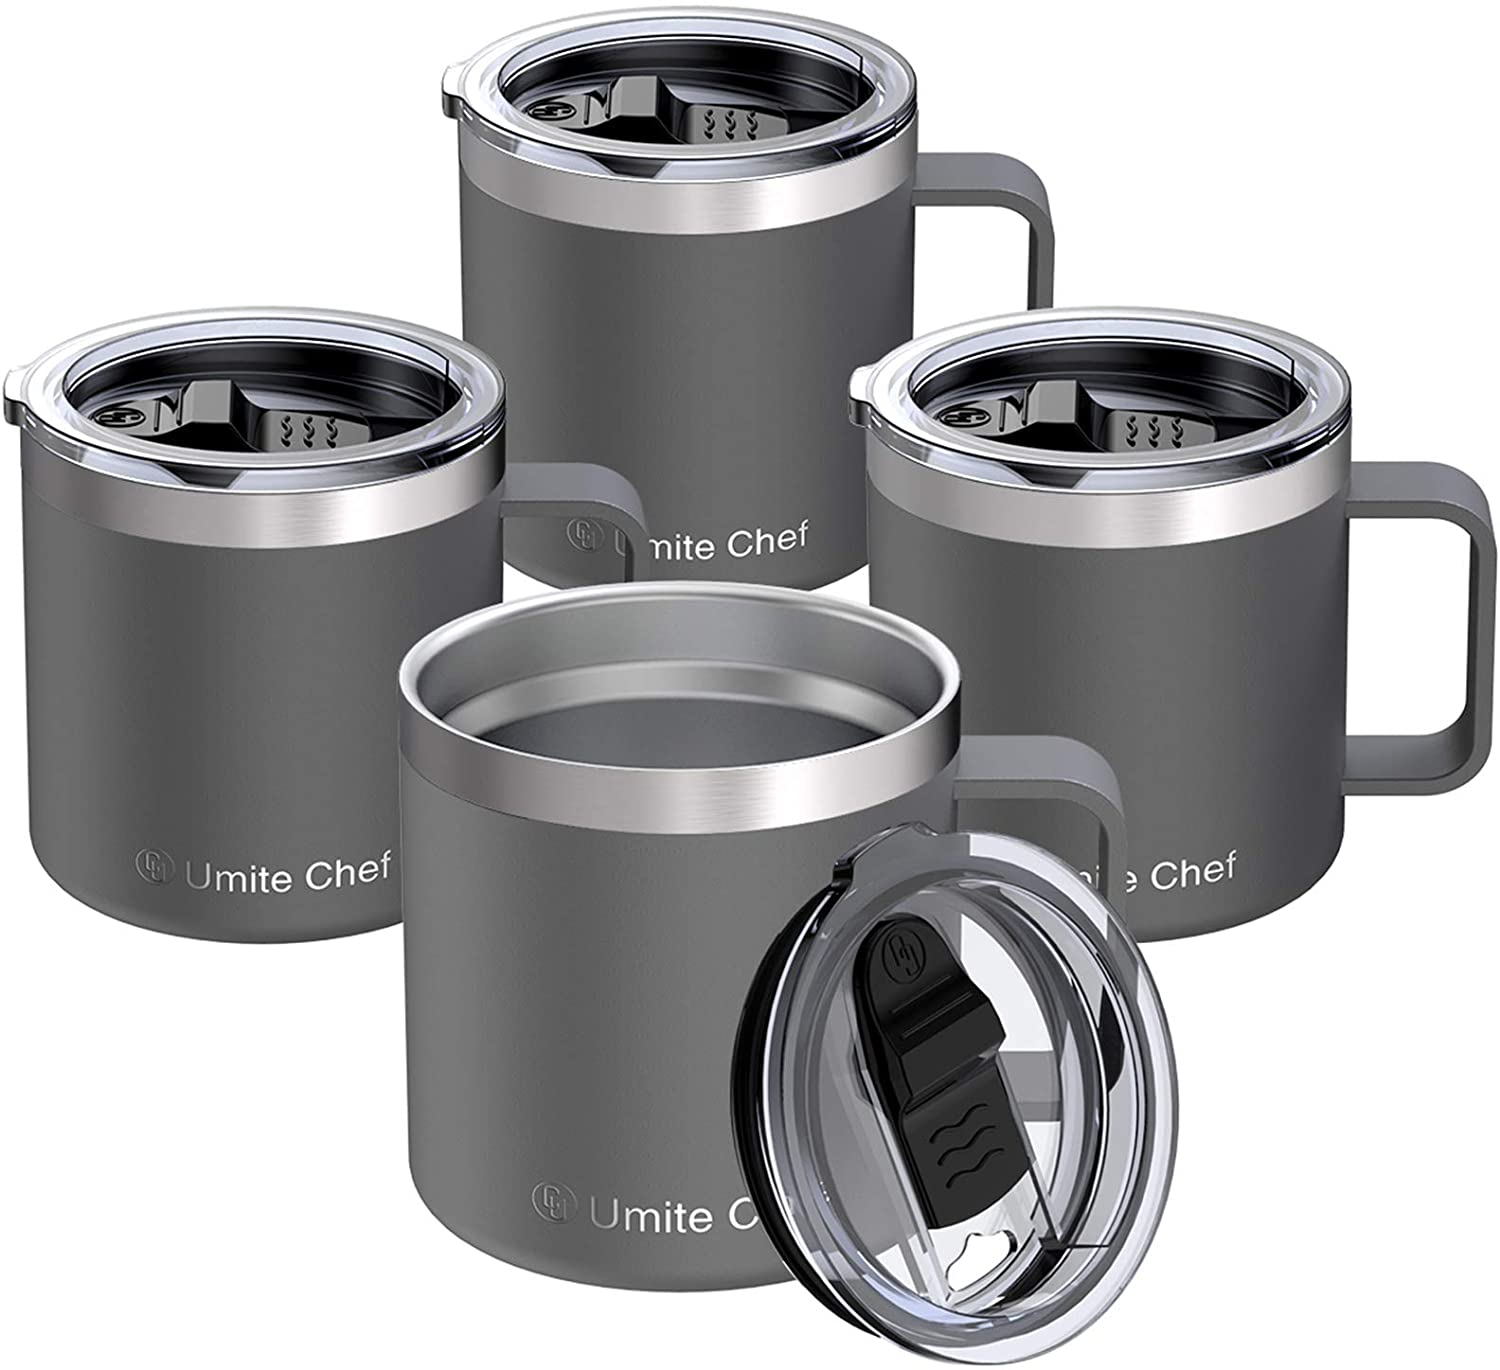 14oz Stainless Steel Insulated Coffee Mug with Handle, Umite Chef Double Wall Vacuum Tumbler with Sliding Lid Travel Friendly, Gray, 4 Pack